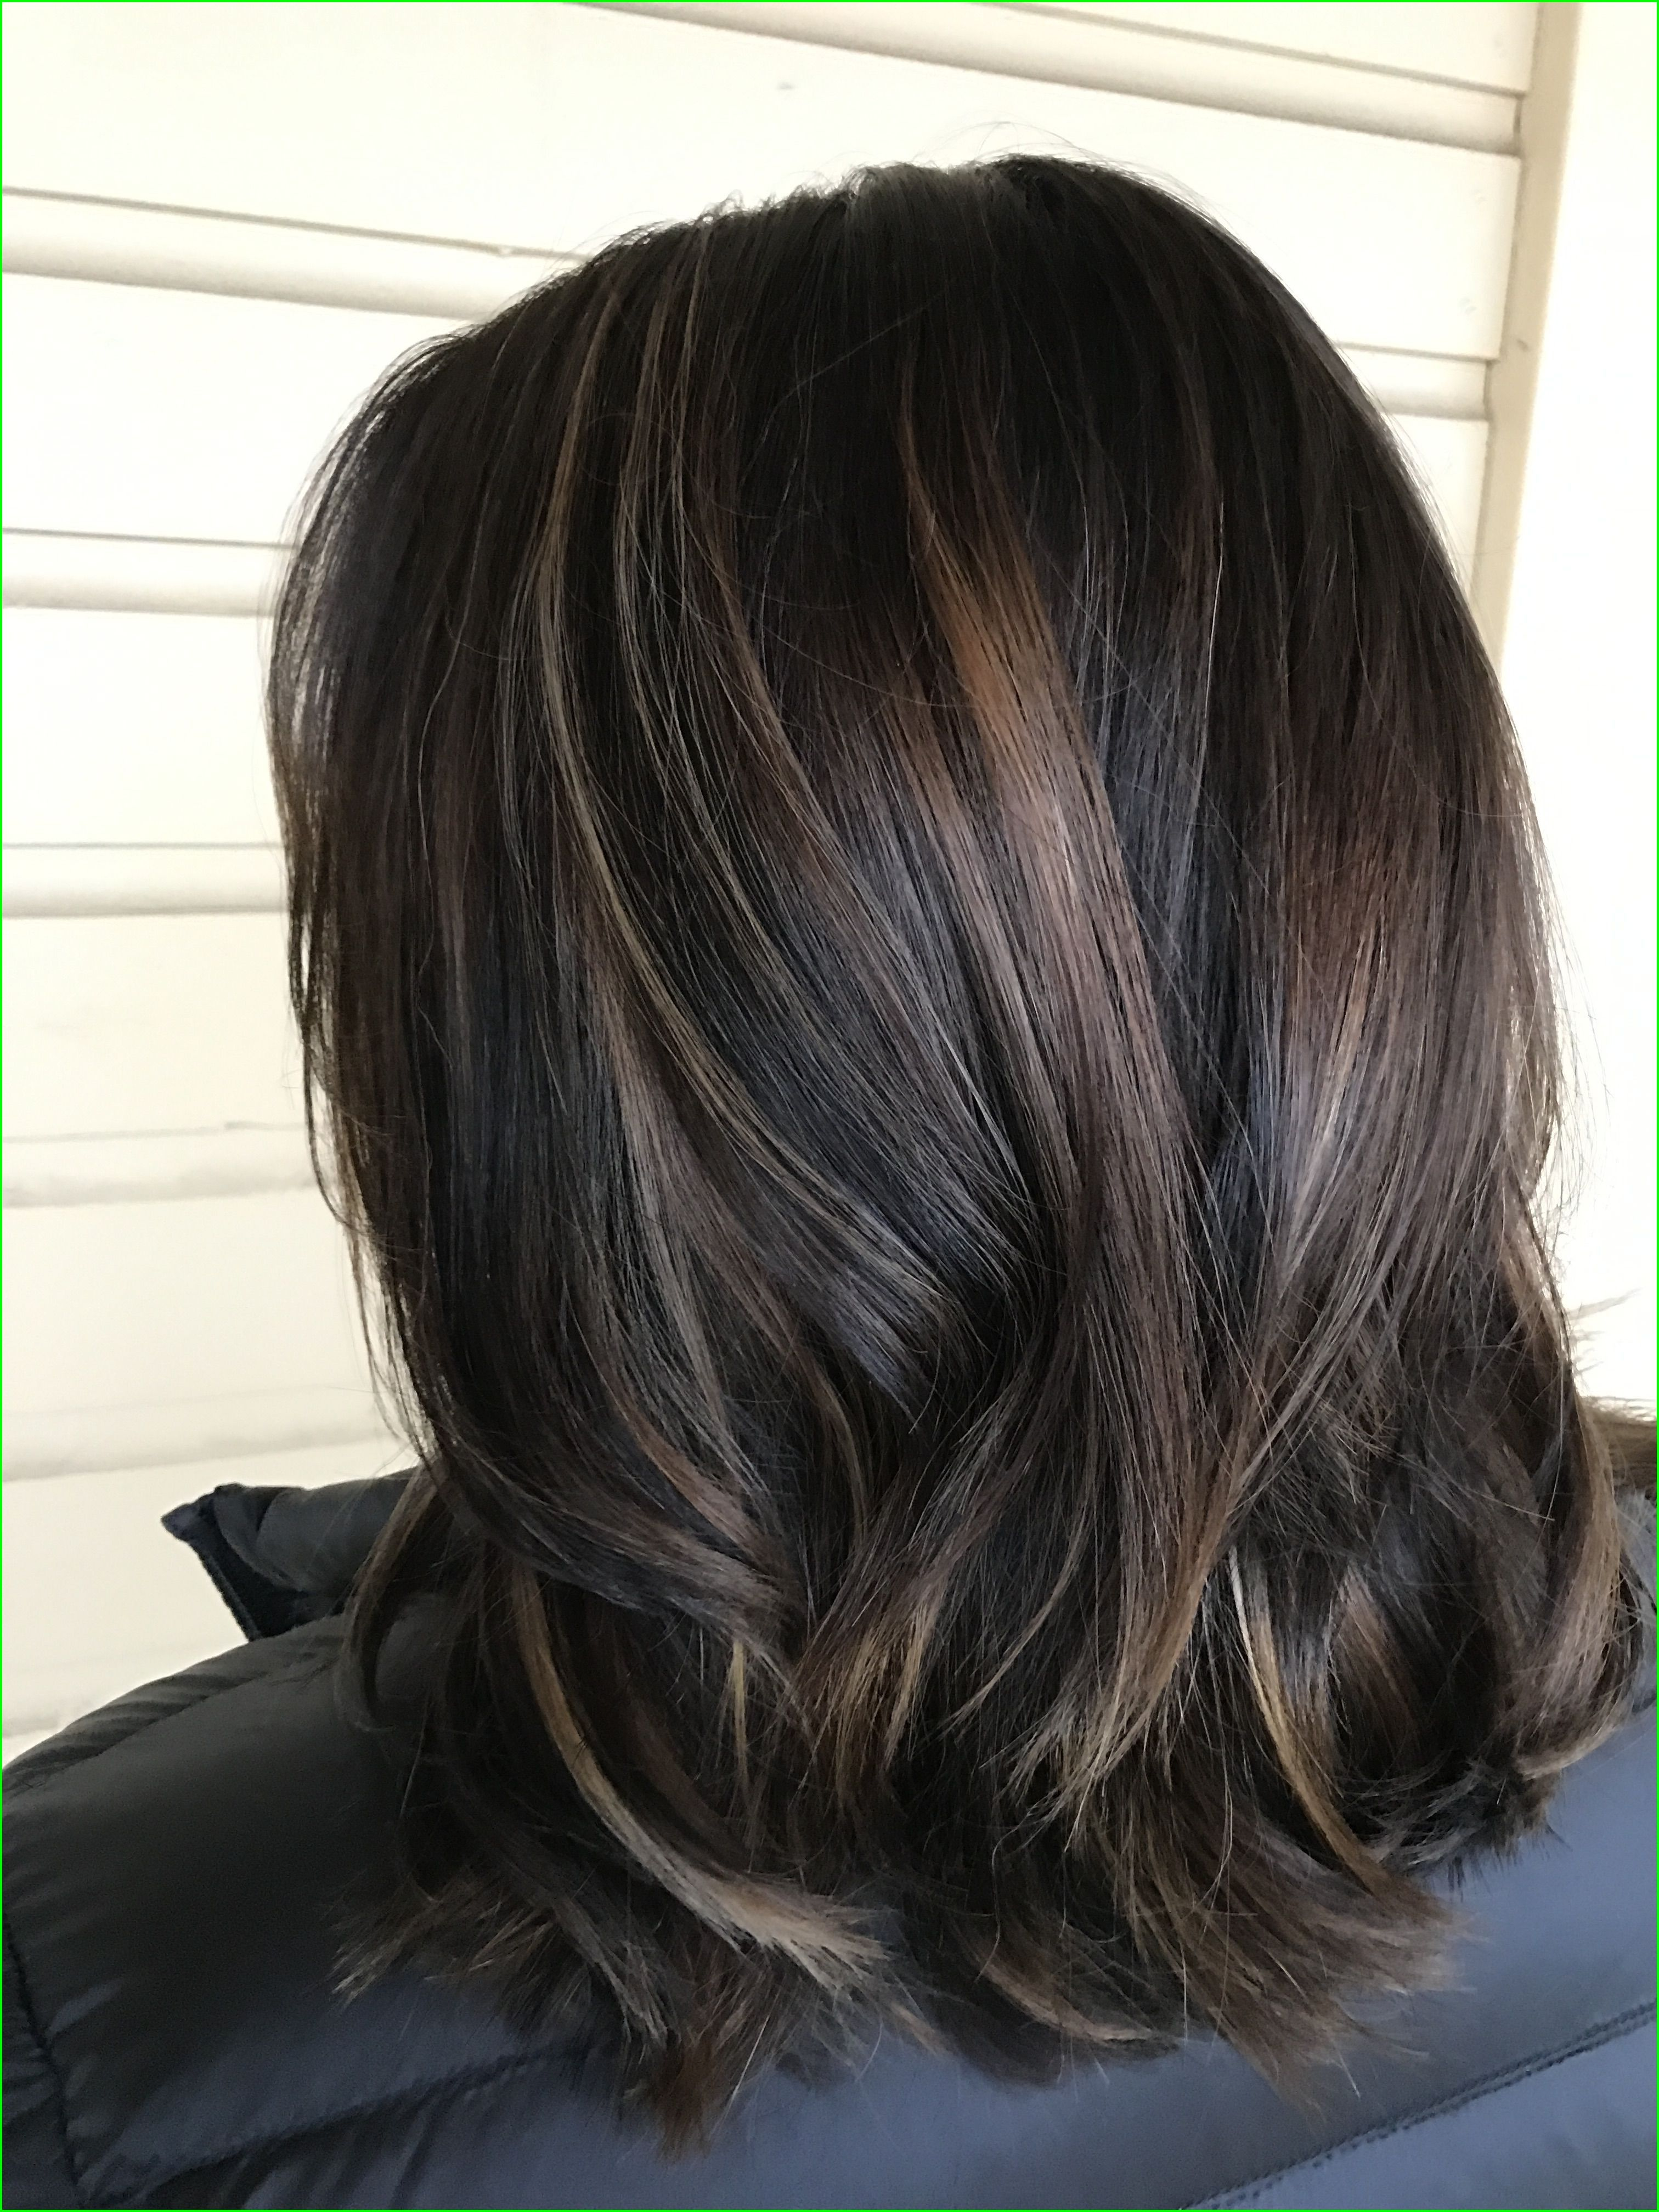 Black Hair With Caramel Highlights 3794 Hairstyles Caramel Brown Highlights Black Hair The Ne Short Hair Balayage Balayage Hair Black Hair With Highlights